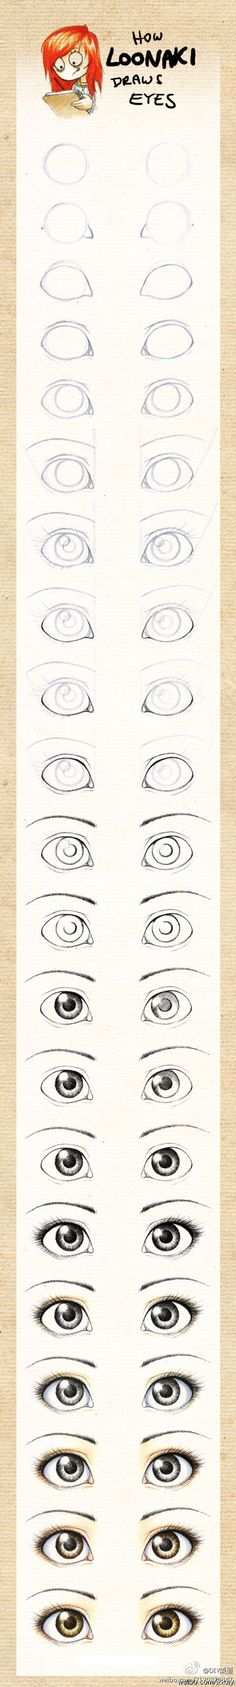 How to draw eyes....um why do I think this is cute? Anyways I guess I may have to start drawing characters...PEOPLE characters...